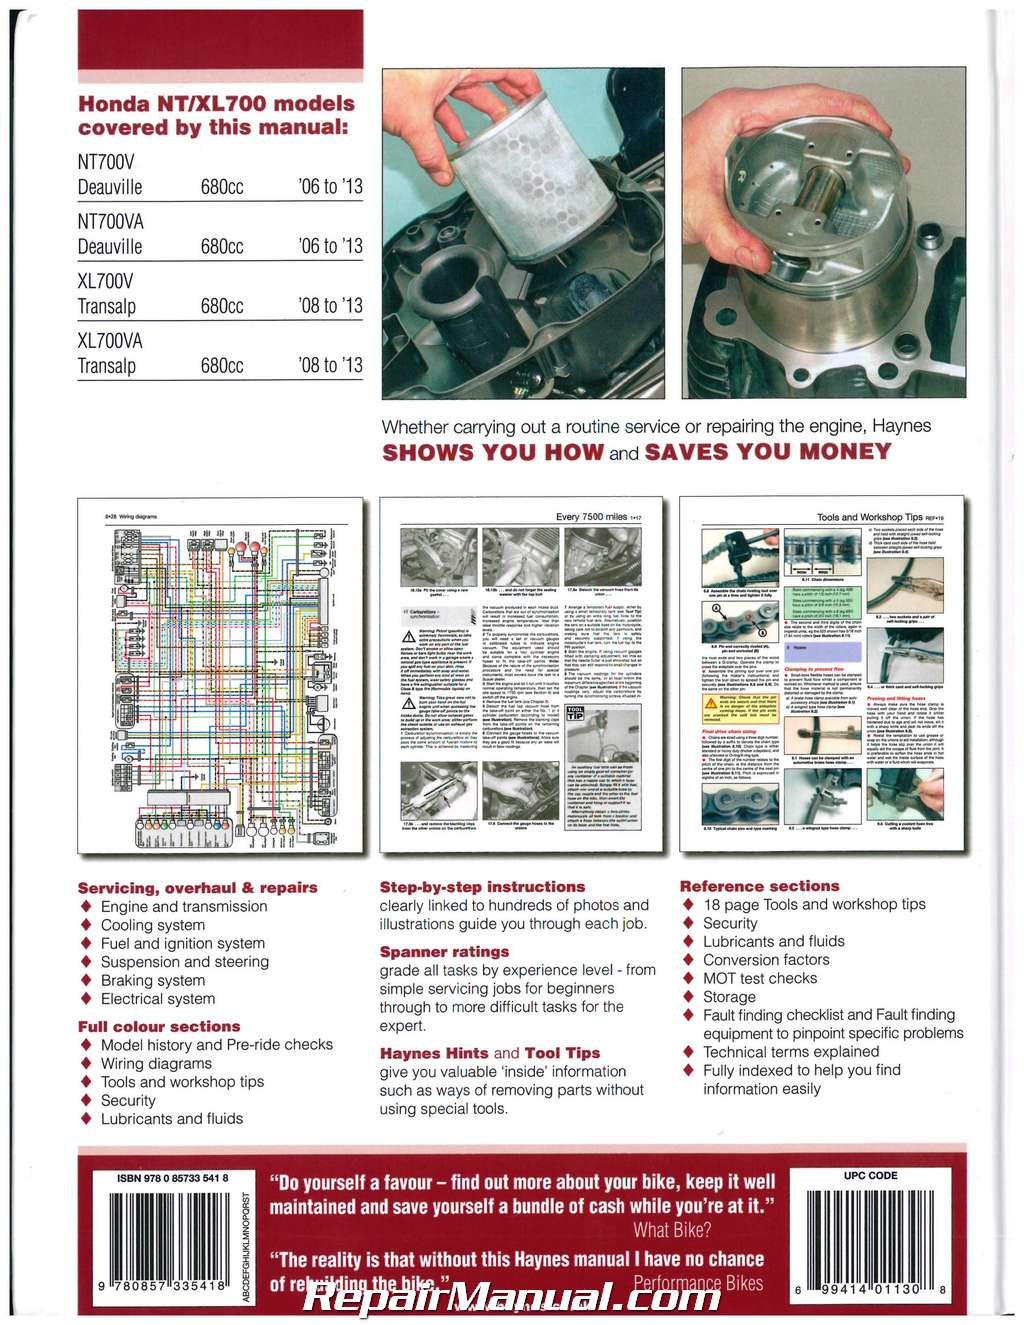 Honda 2006-2013 NT700V Deauville & 2008-2013 XL700 Transalp Motorcycle  Repair Manual